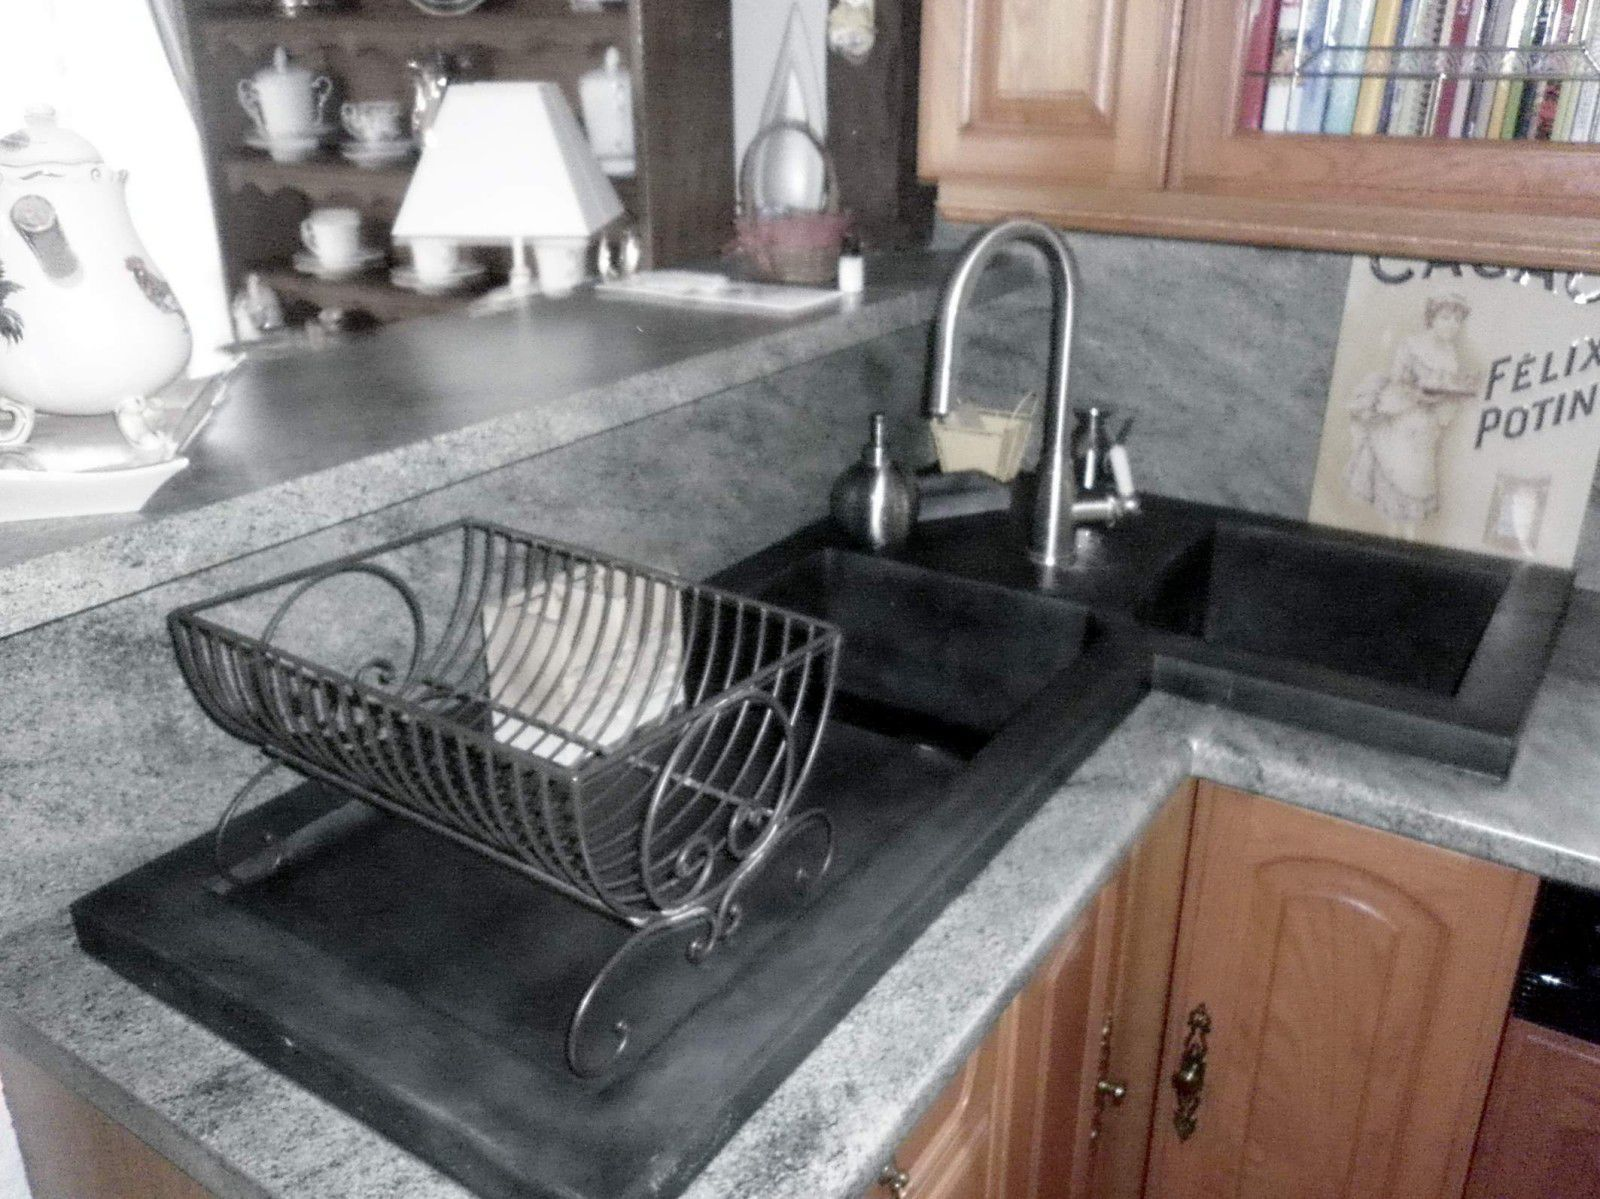 Double Kitchen Sink / Ductal® UHP Concrete / Corner / With Drainboard  BALIAN BETON Atelier ...